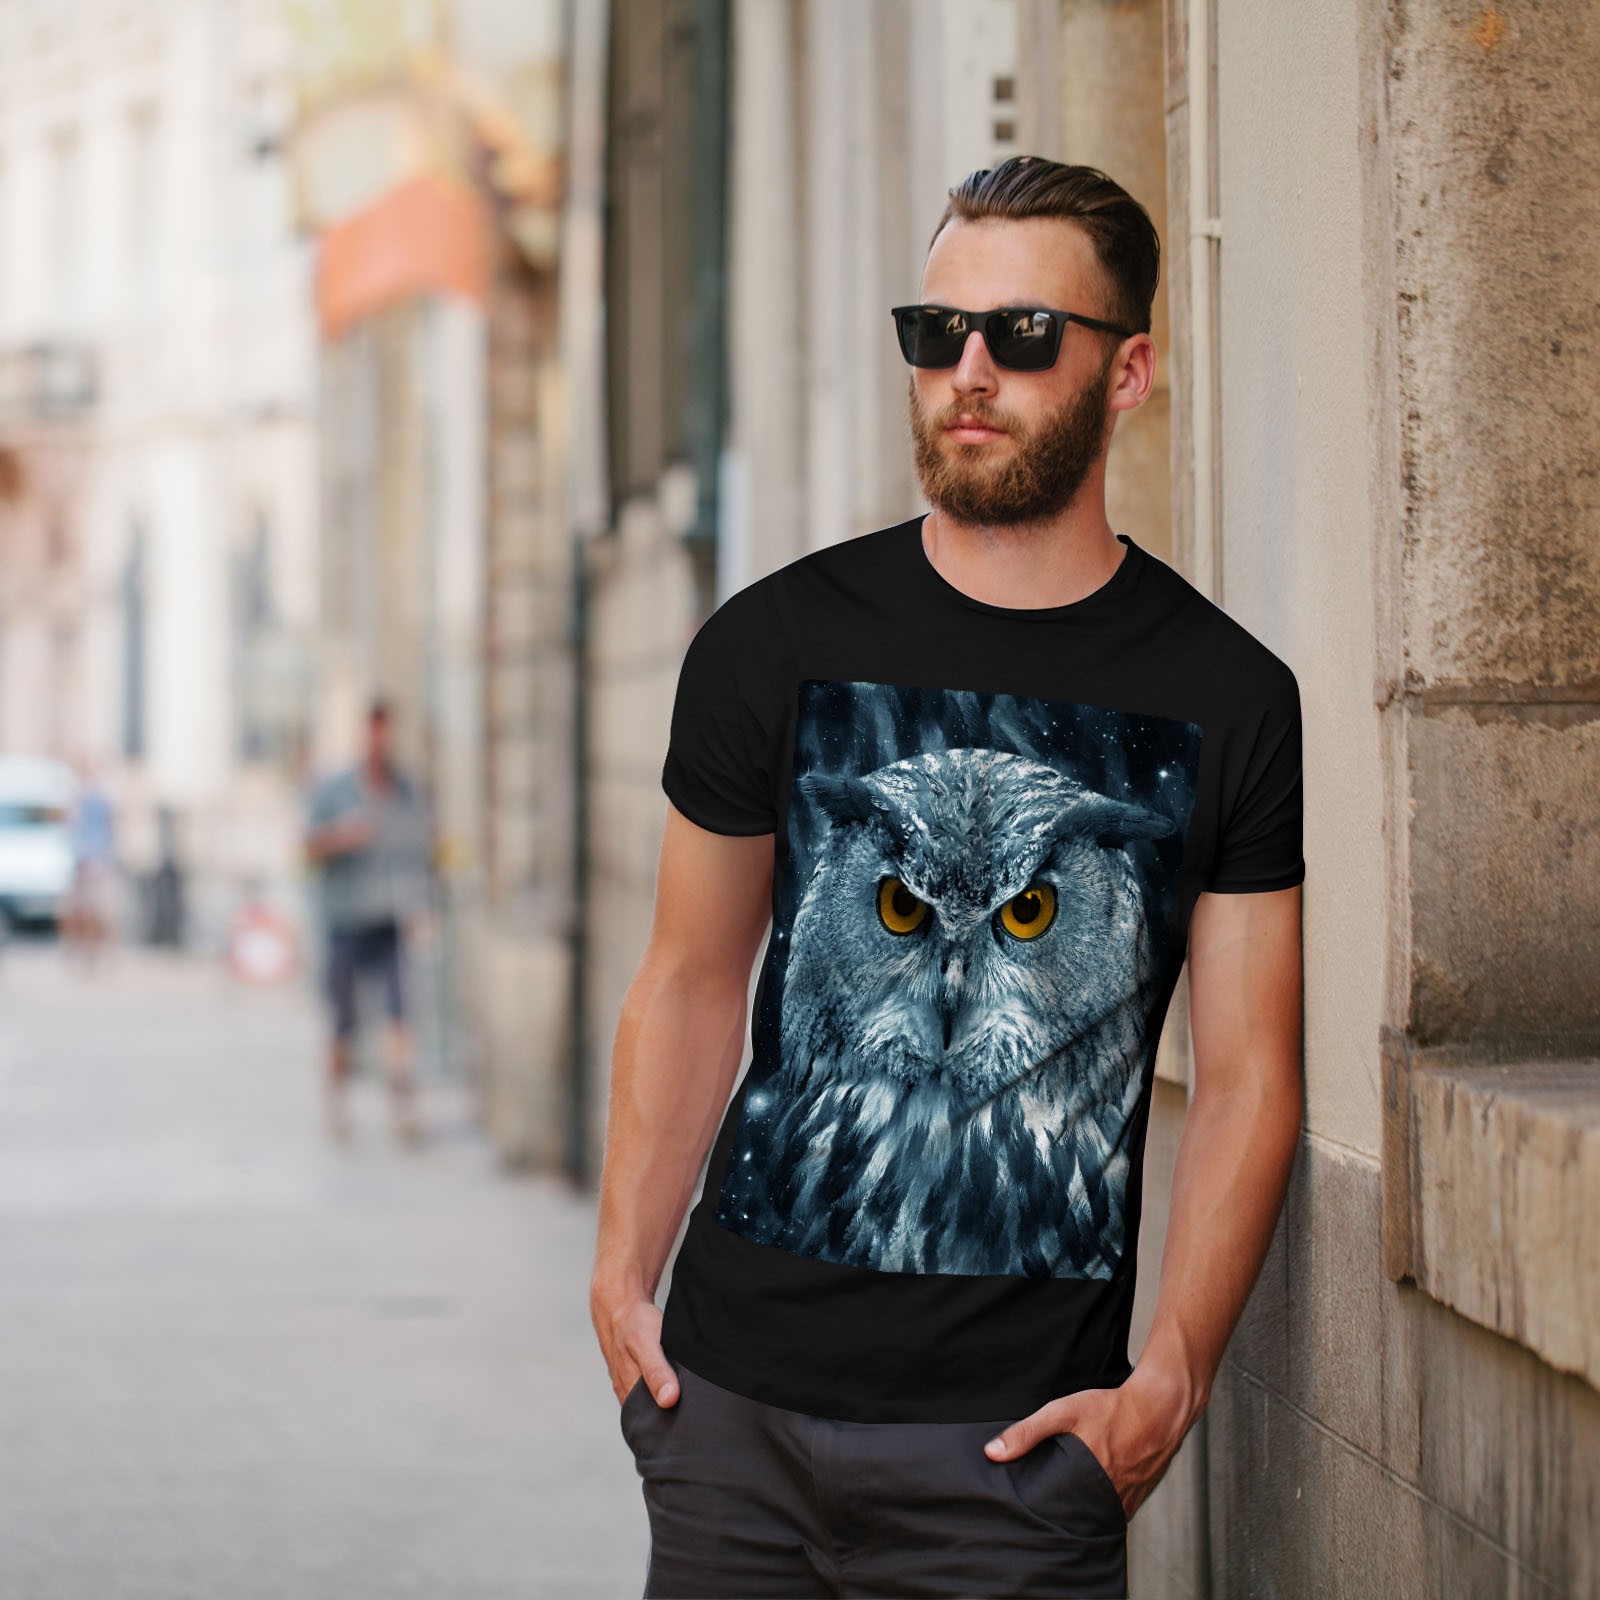 miniature 5 - Wellcoda-Wild-Looking-Owl-Mens-T-shirt-Mother-Graphic-Design-Printed-Tee